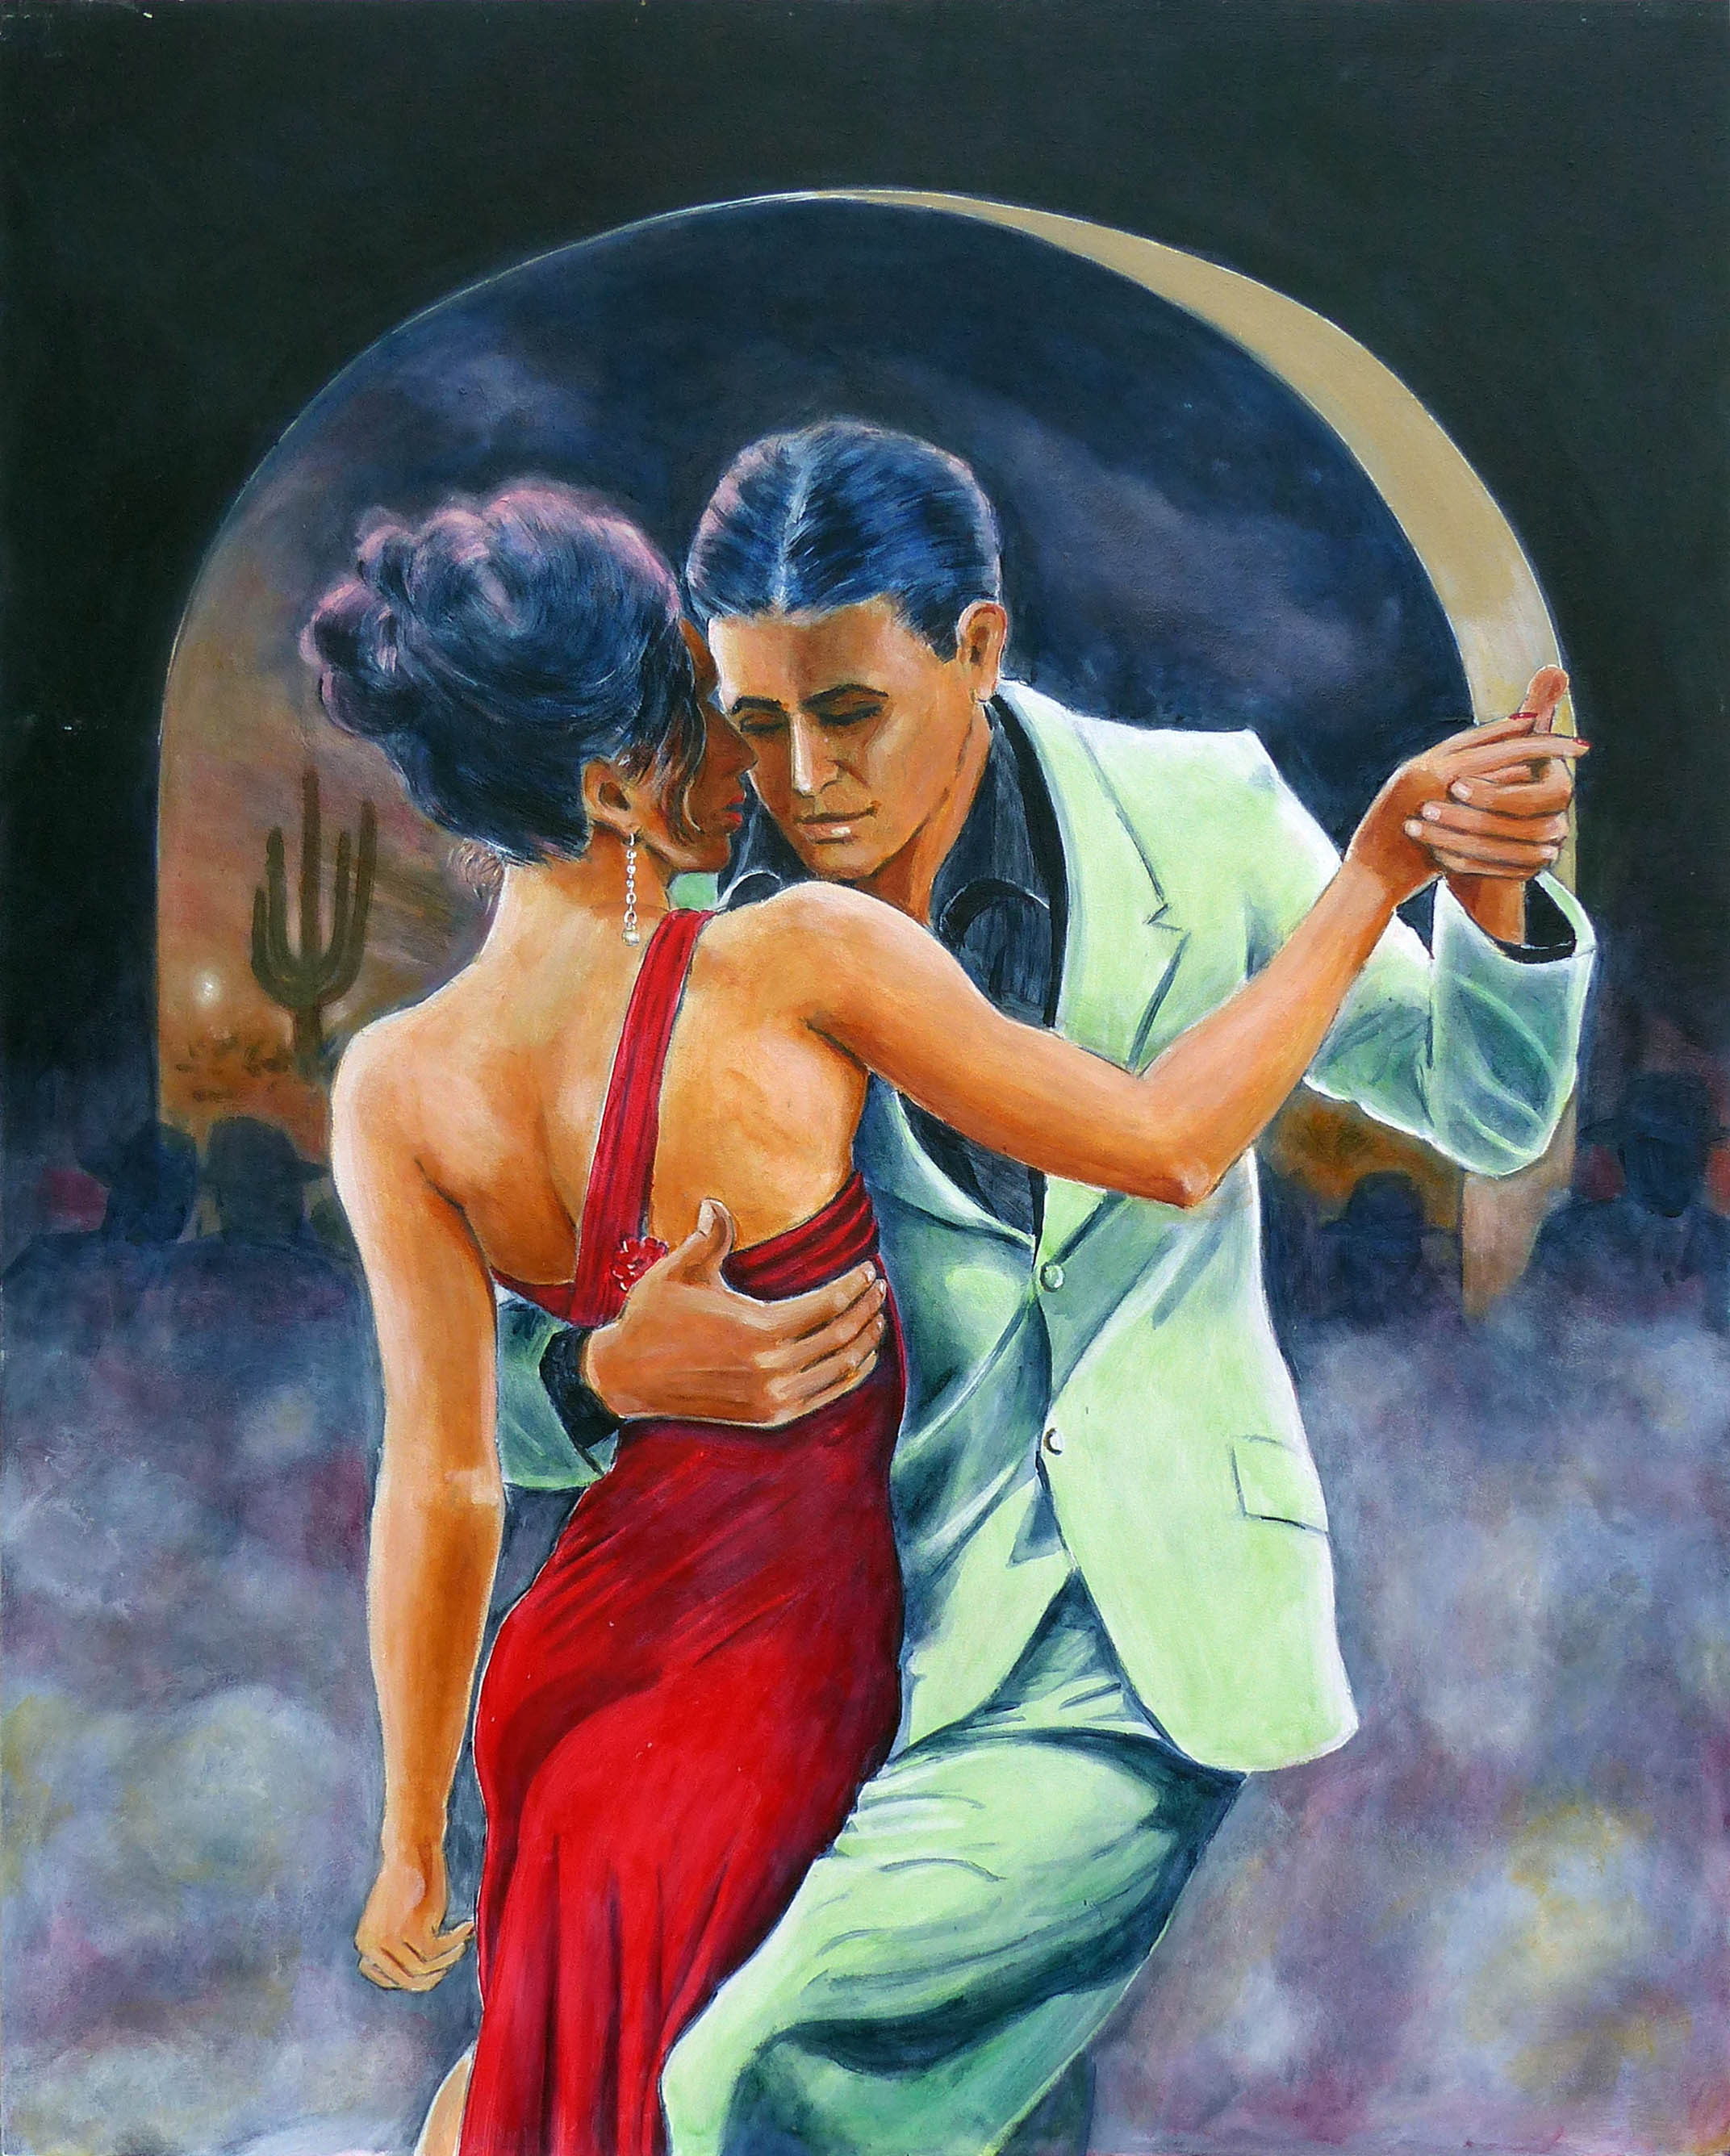 Down south near The Borderlands Latin rhythms reign supreme. Two dancers dance the night away,